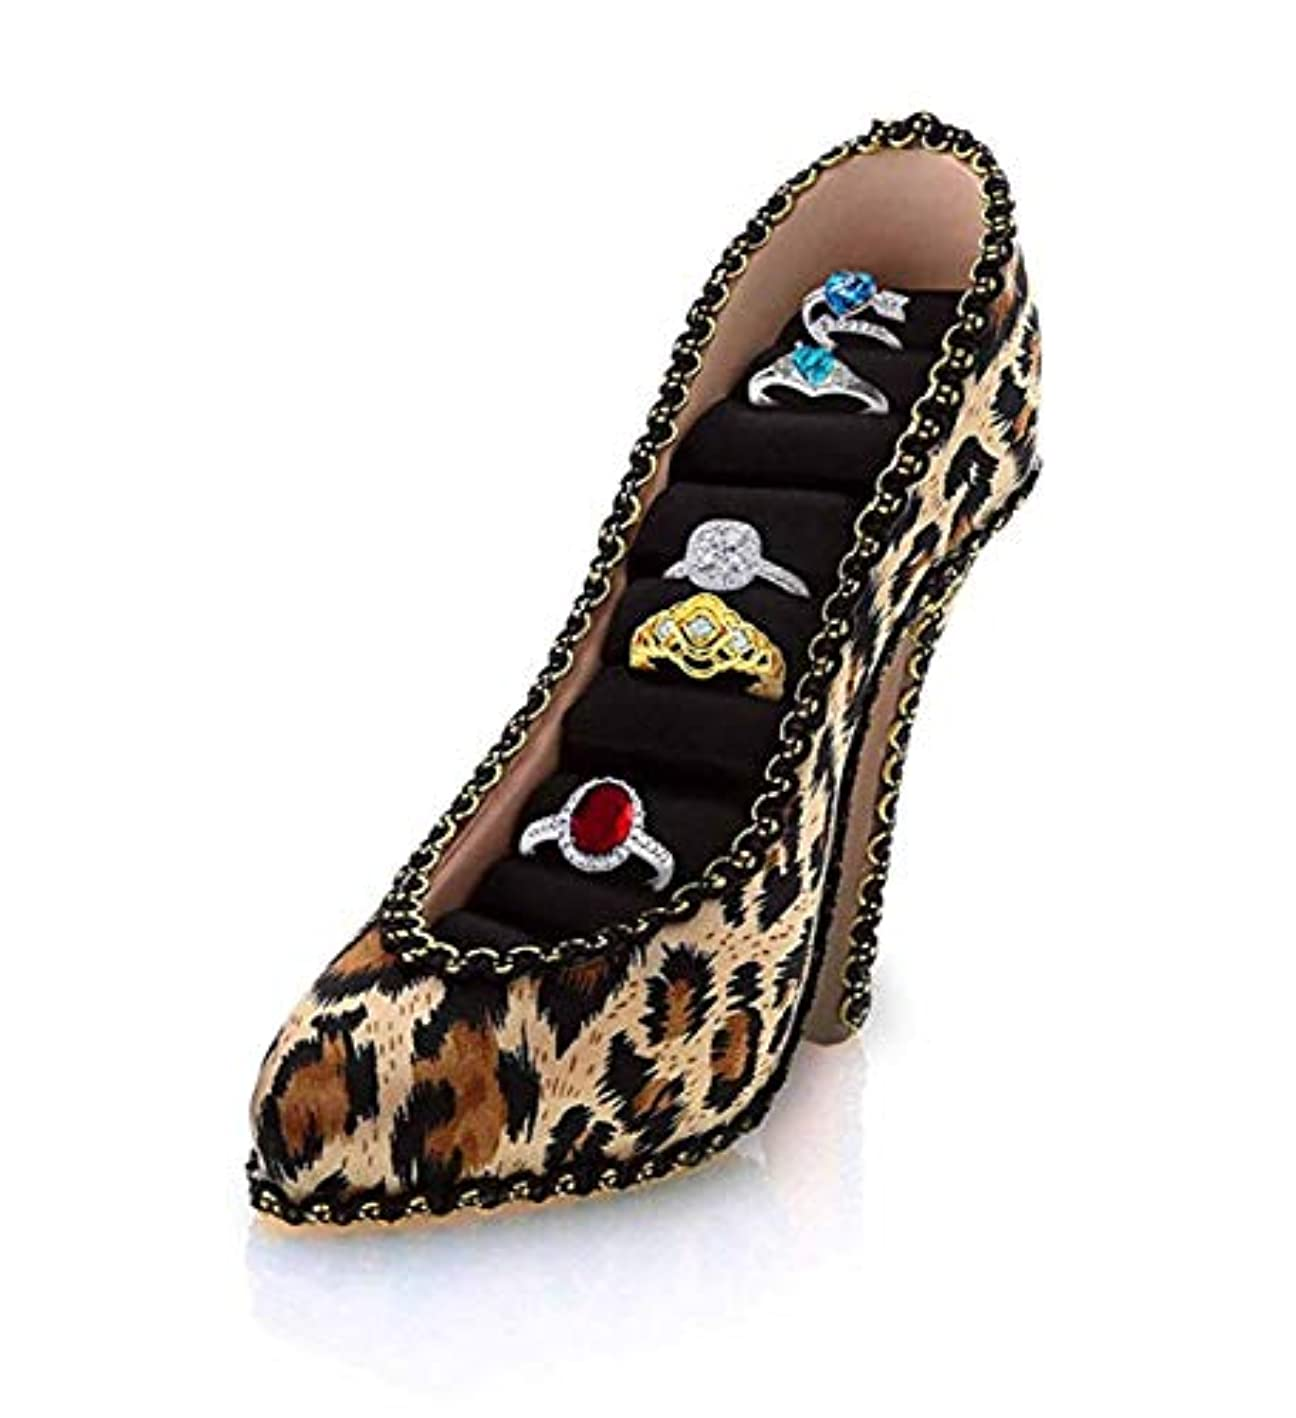 Mozlly Fashionable Leopard High Heel Sparkly Lace Shoe Ring Holder, 5 inch Jewelry Stand Organizer Holder Shoes Tier Display Princess Bracelets Earrings Jewelries Ring Rack Décor